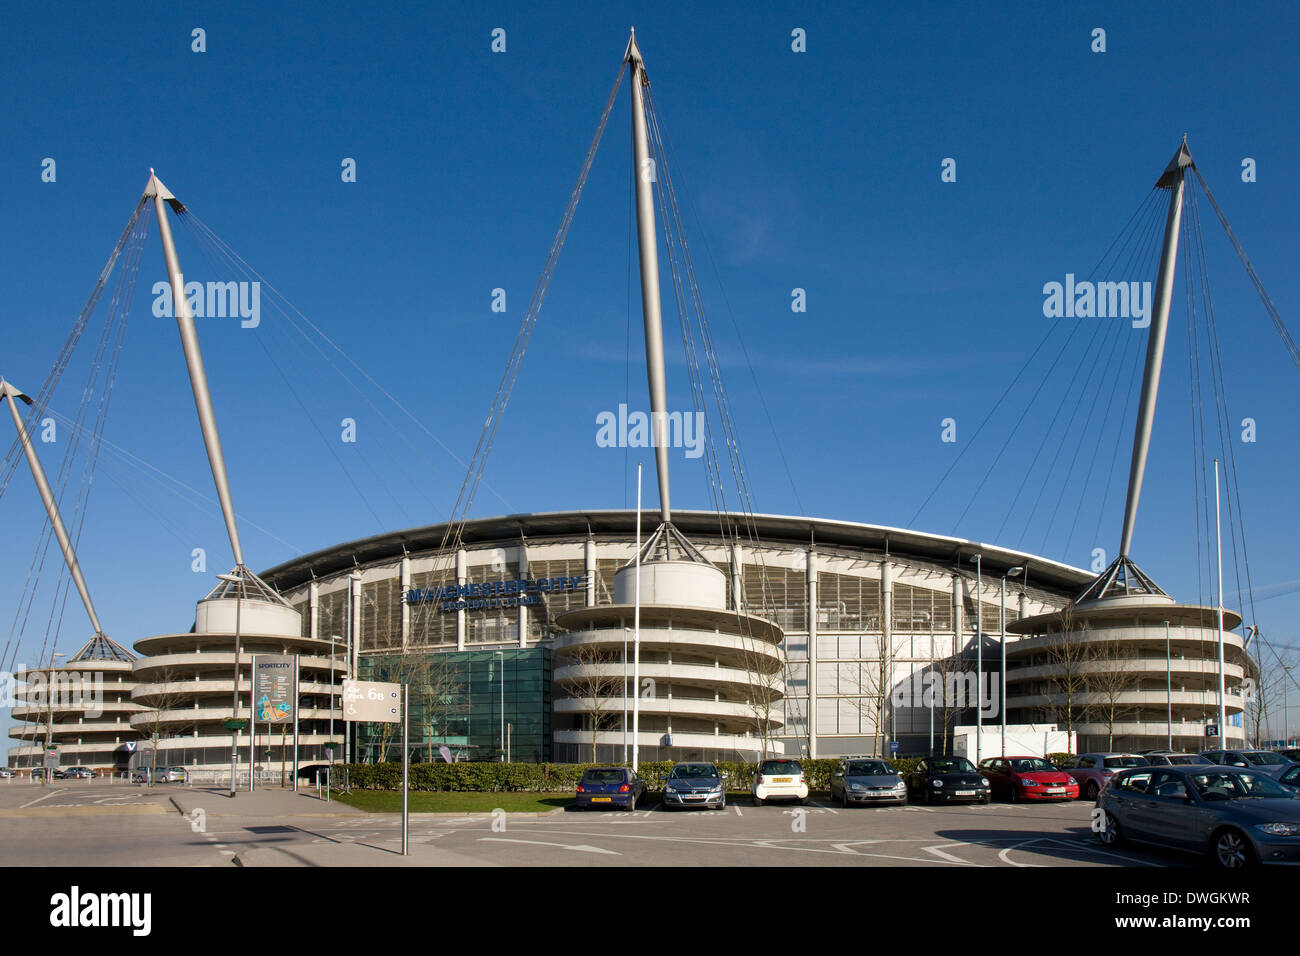 City of Manchester Stadium in Manchester in northwest England Stock Photo